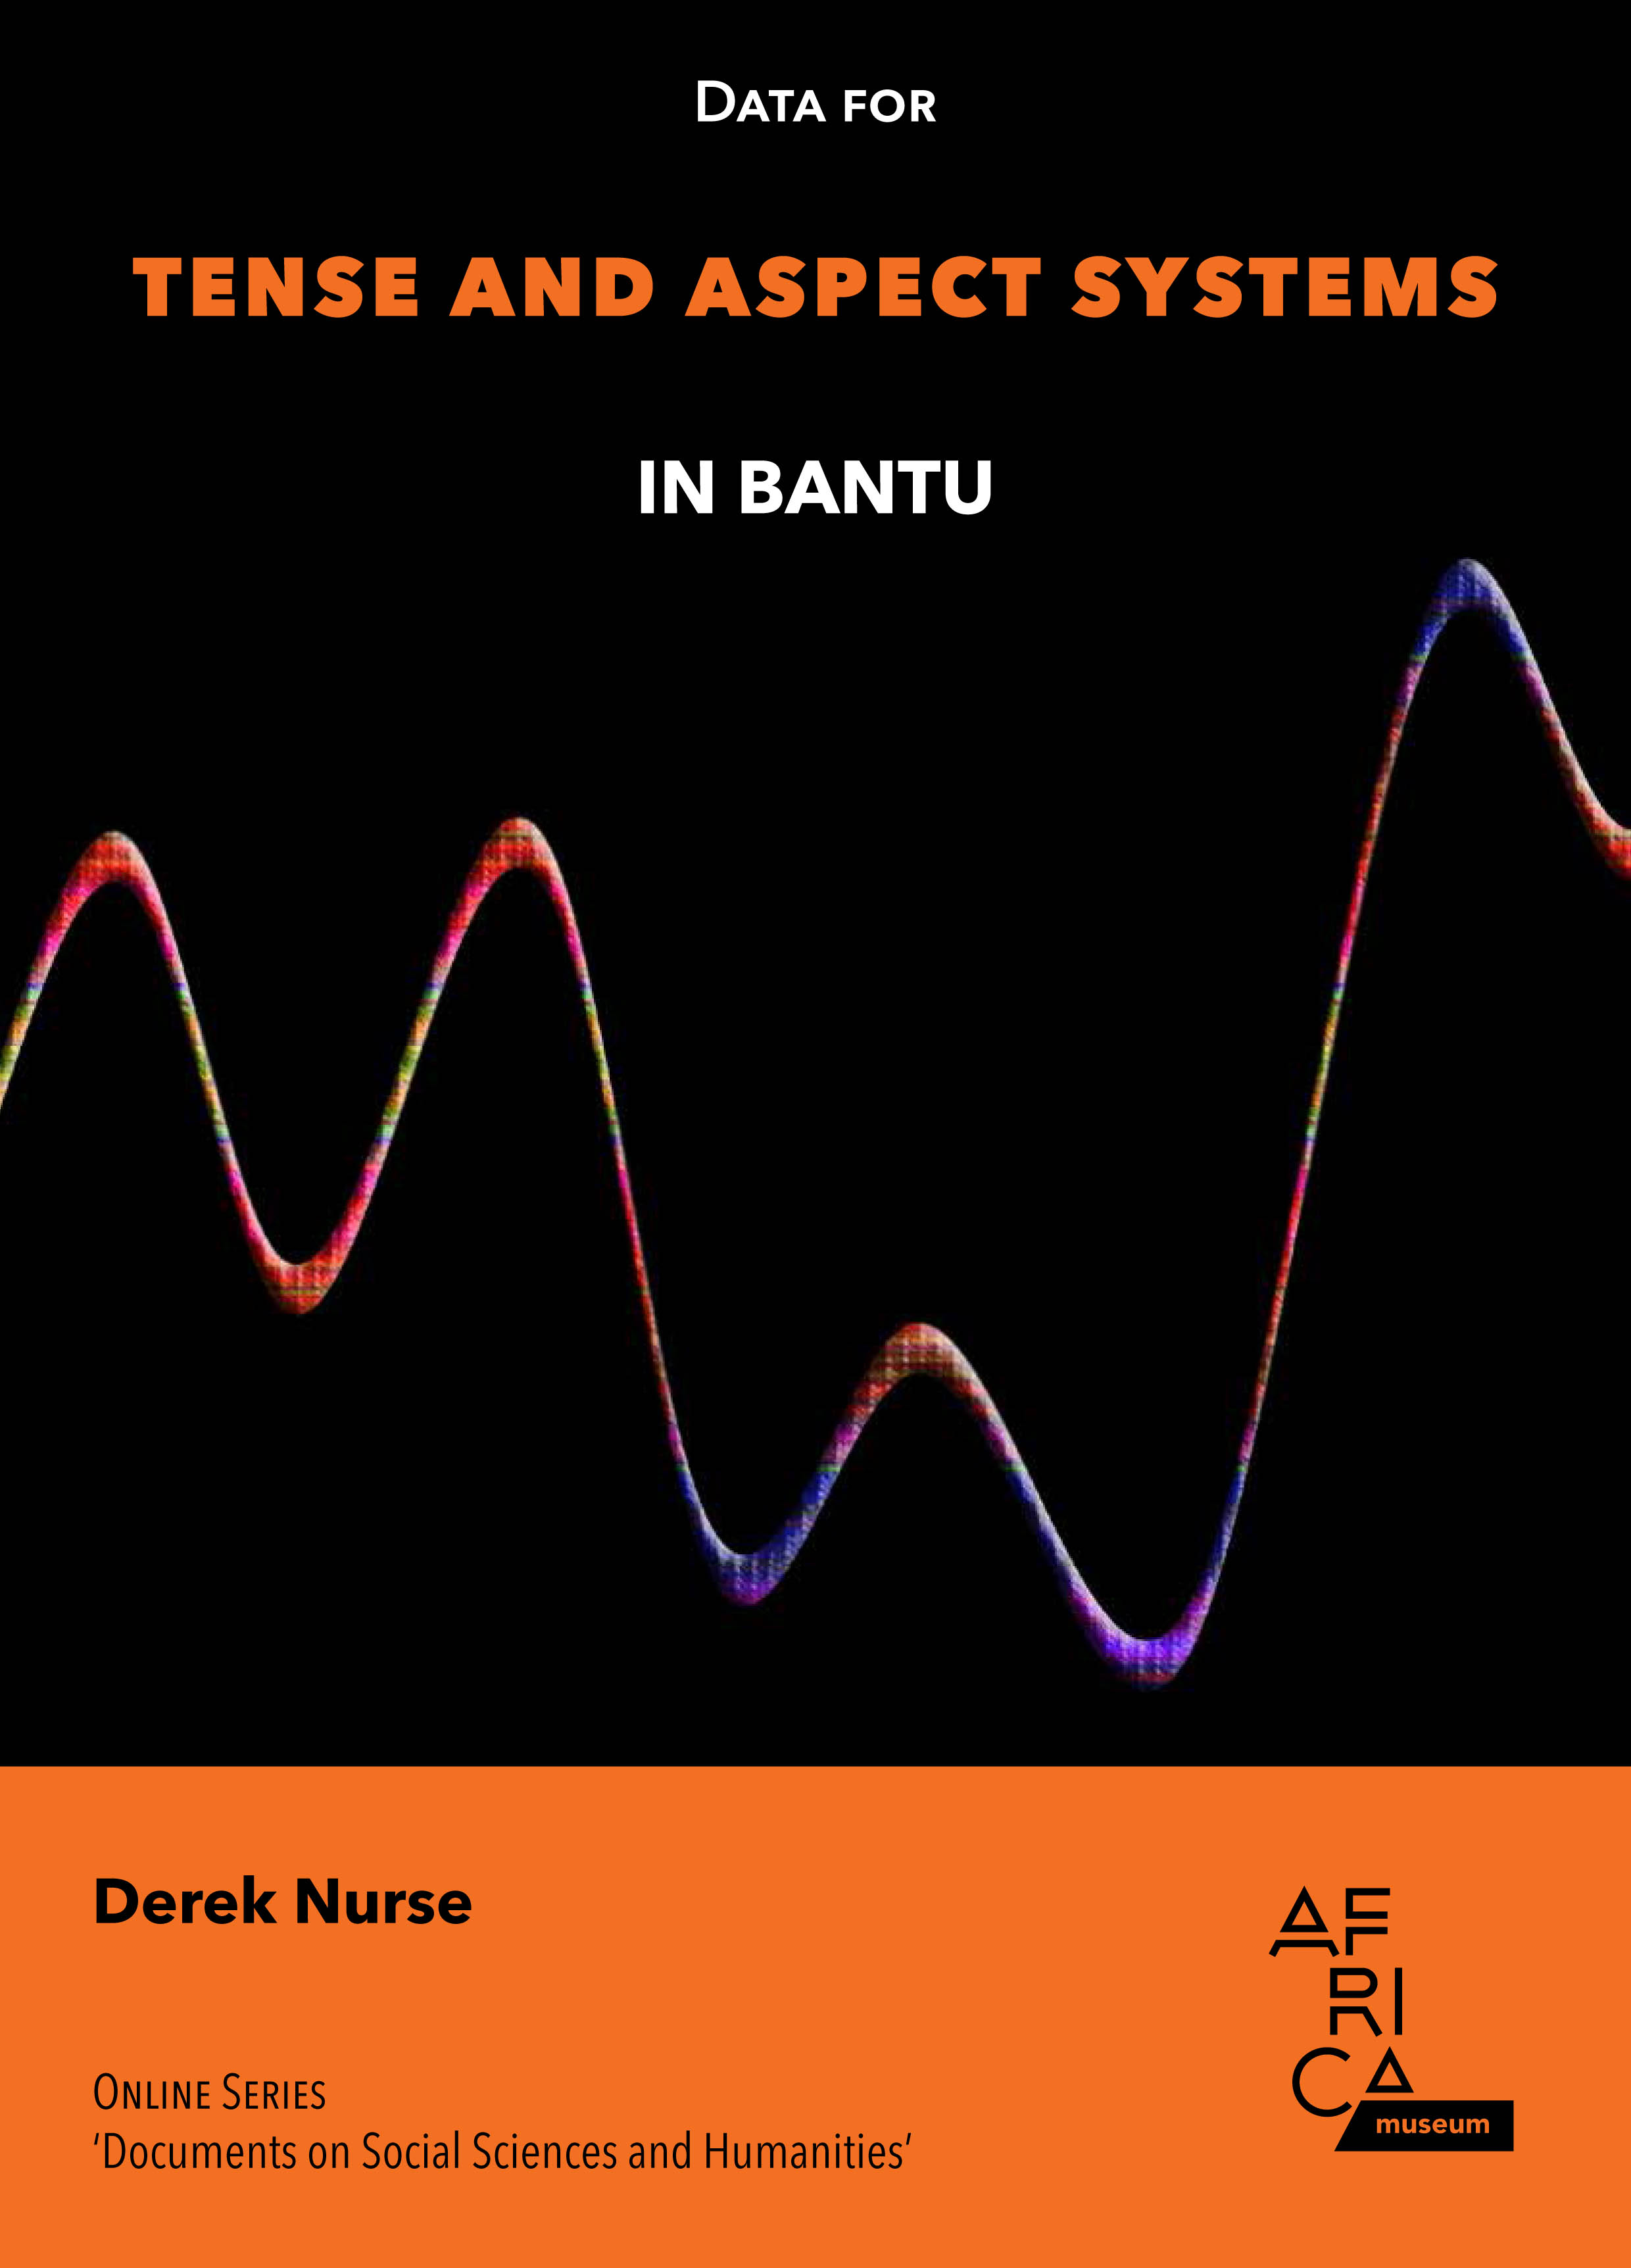 Data for Tense and Aspect in Bantu (pdf, 1.6 MB)